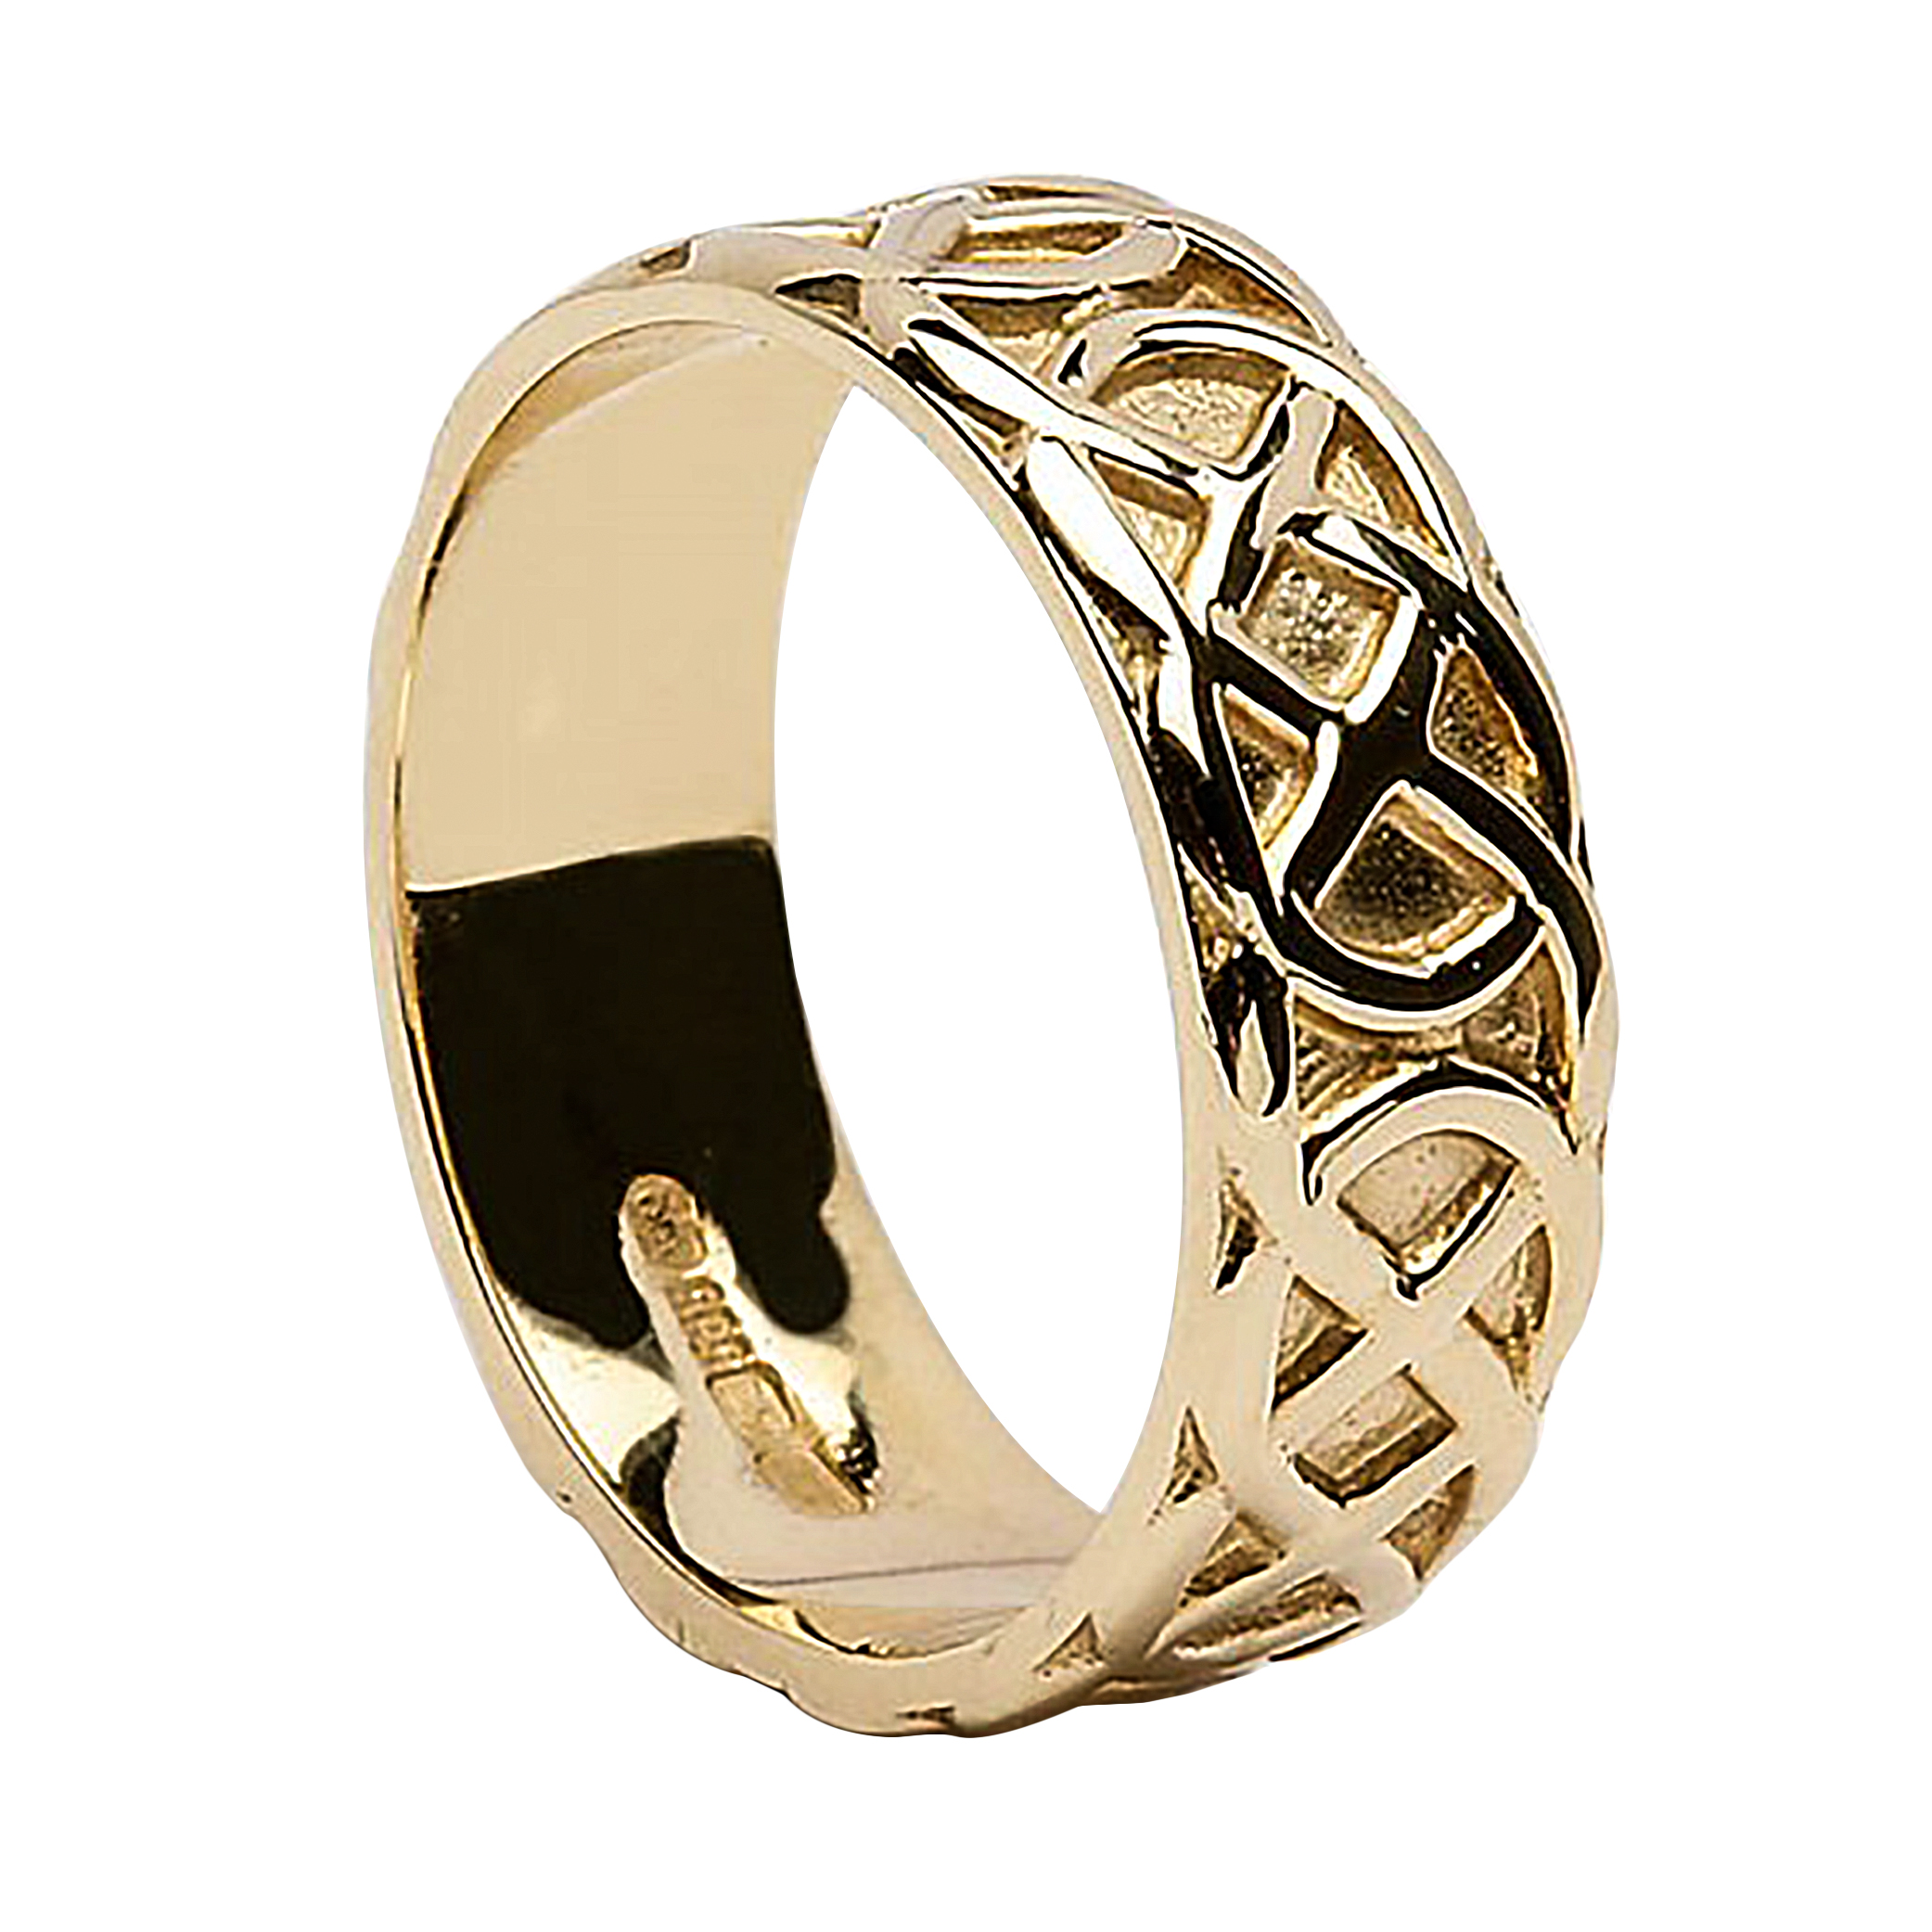 unique il band signet bands geometric karat solid zoom gold fullxfull listing ring